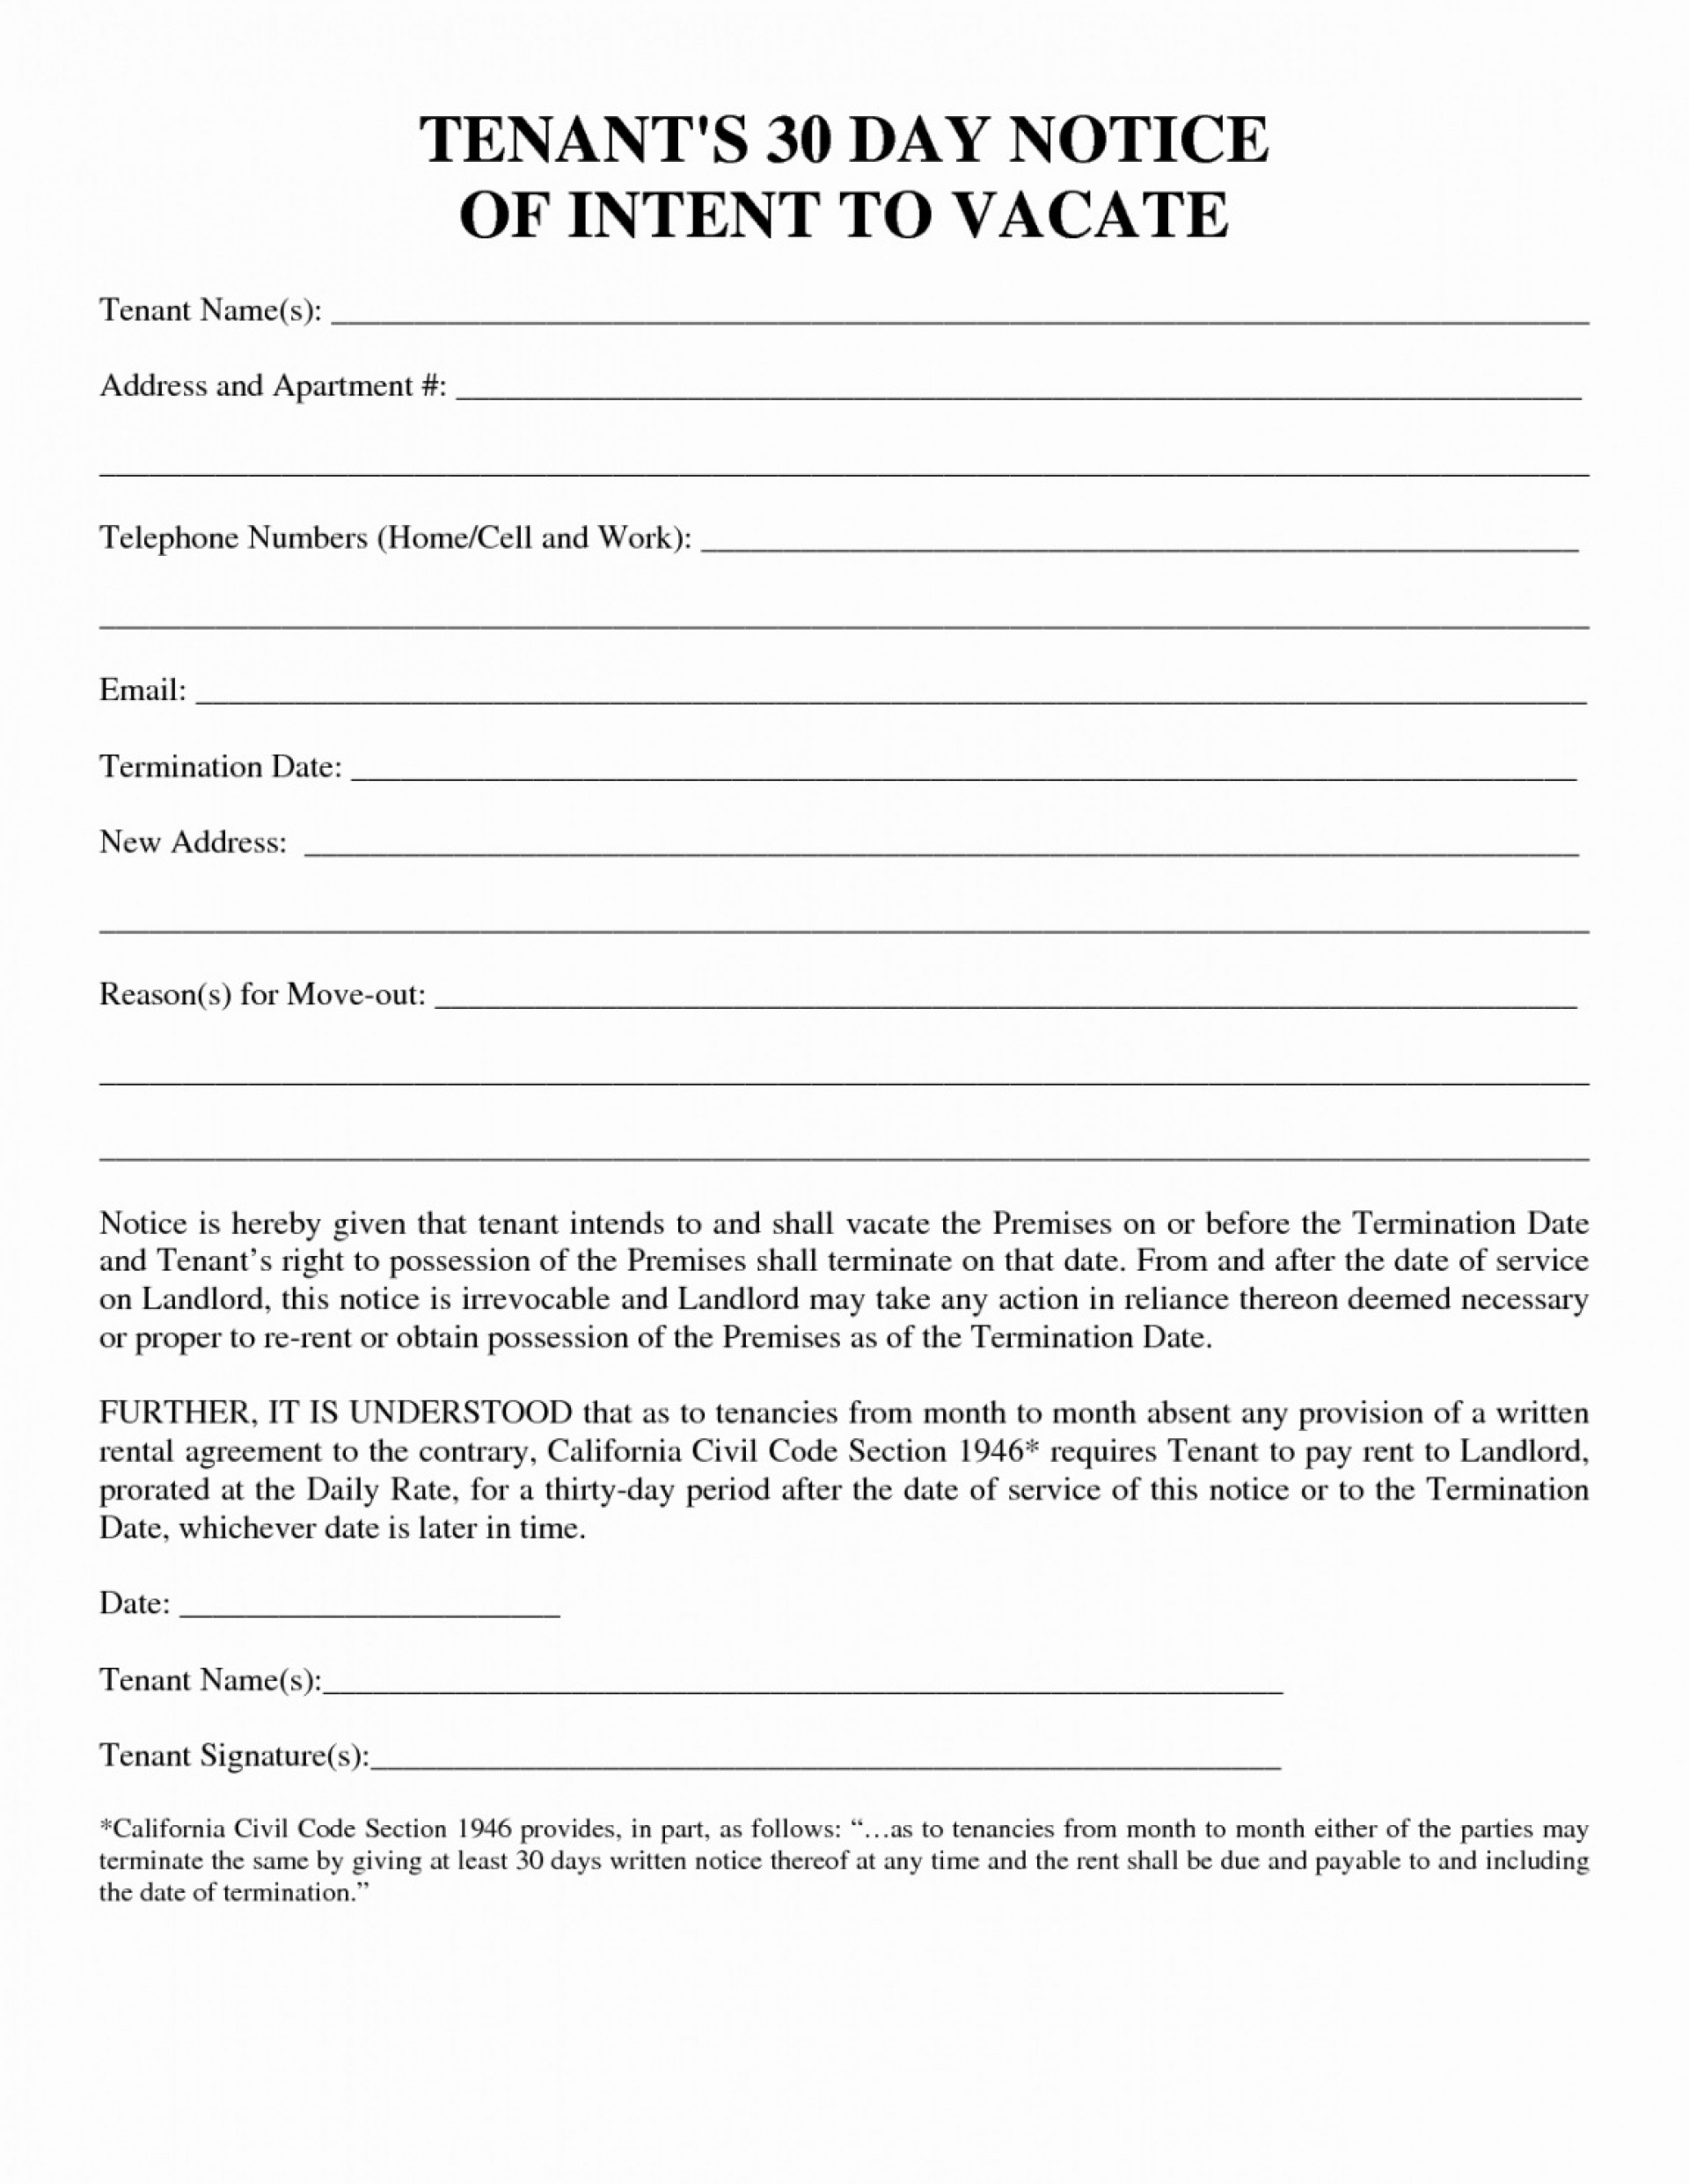 004 Staggering 30 Day Eviction Notice Template Example  Pdf Form1920